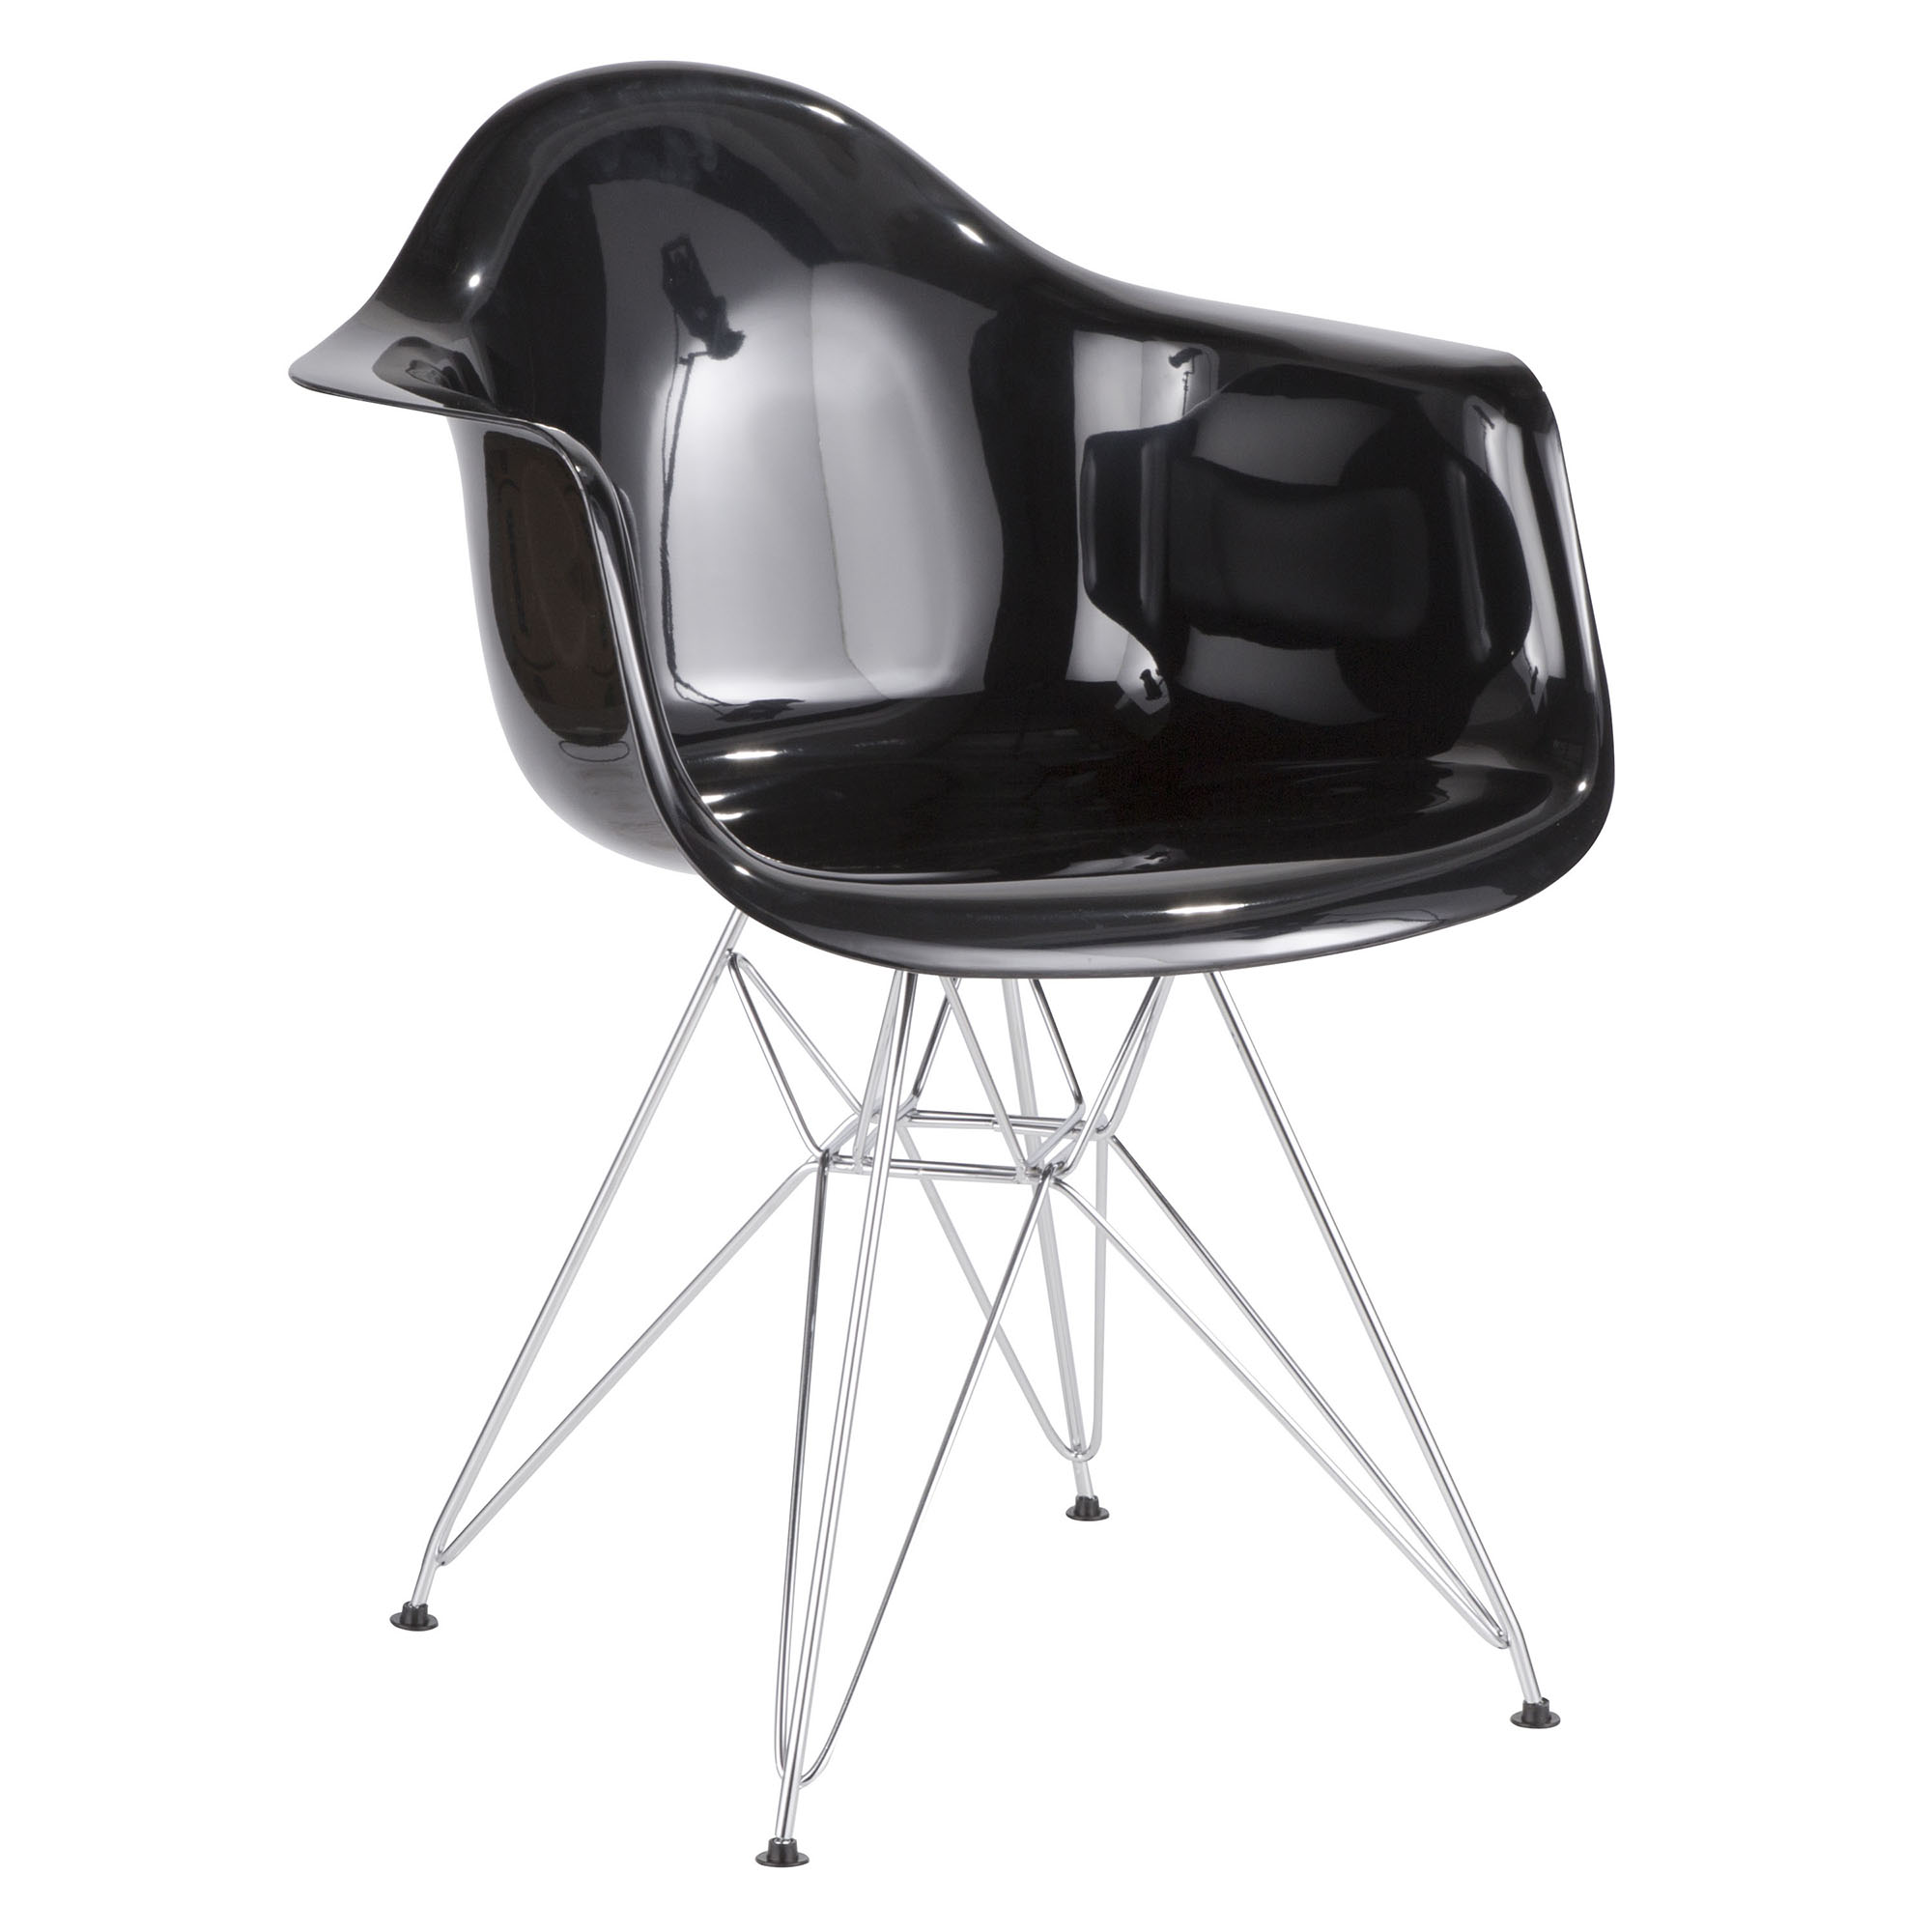 Neo Flair Contemporary Dining/Accent Chair in Black and Chrome by LumiSource